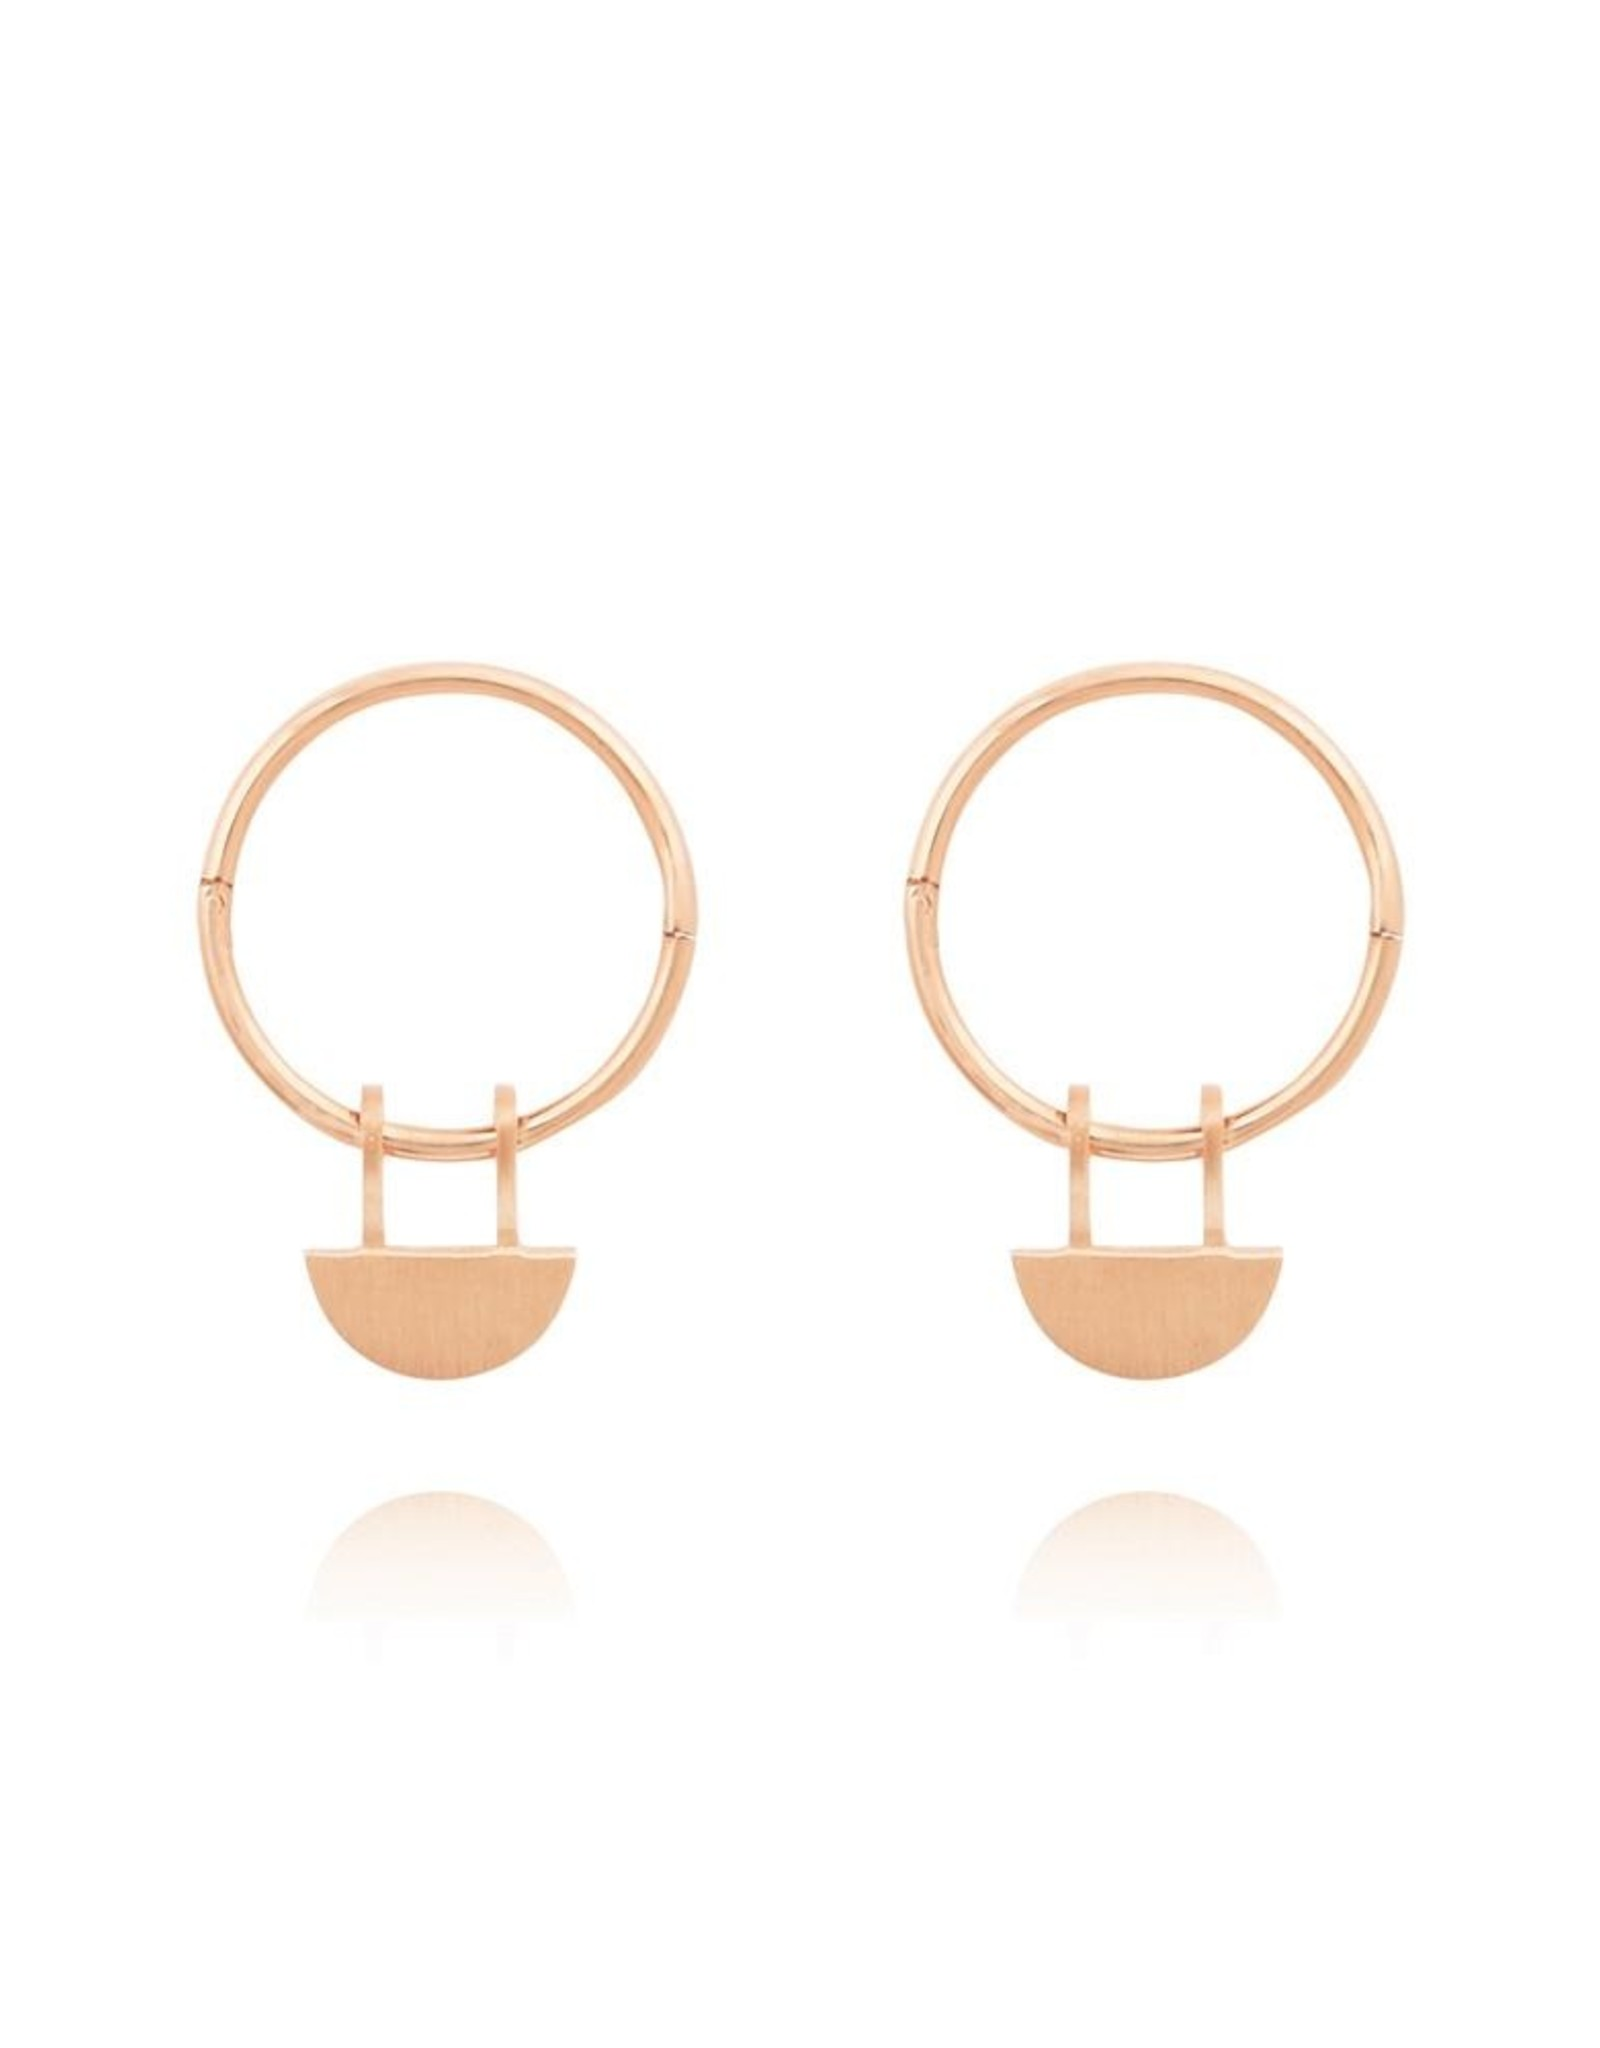 Yolly Sleeper Hoop Earrings - Rose Gold